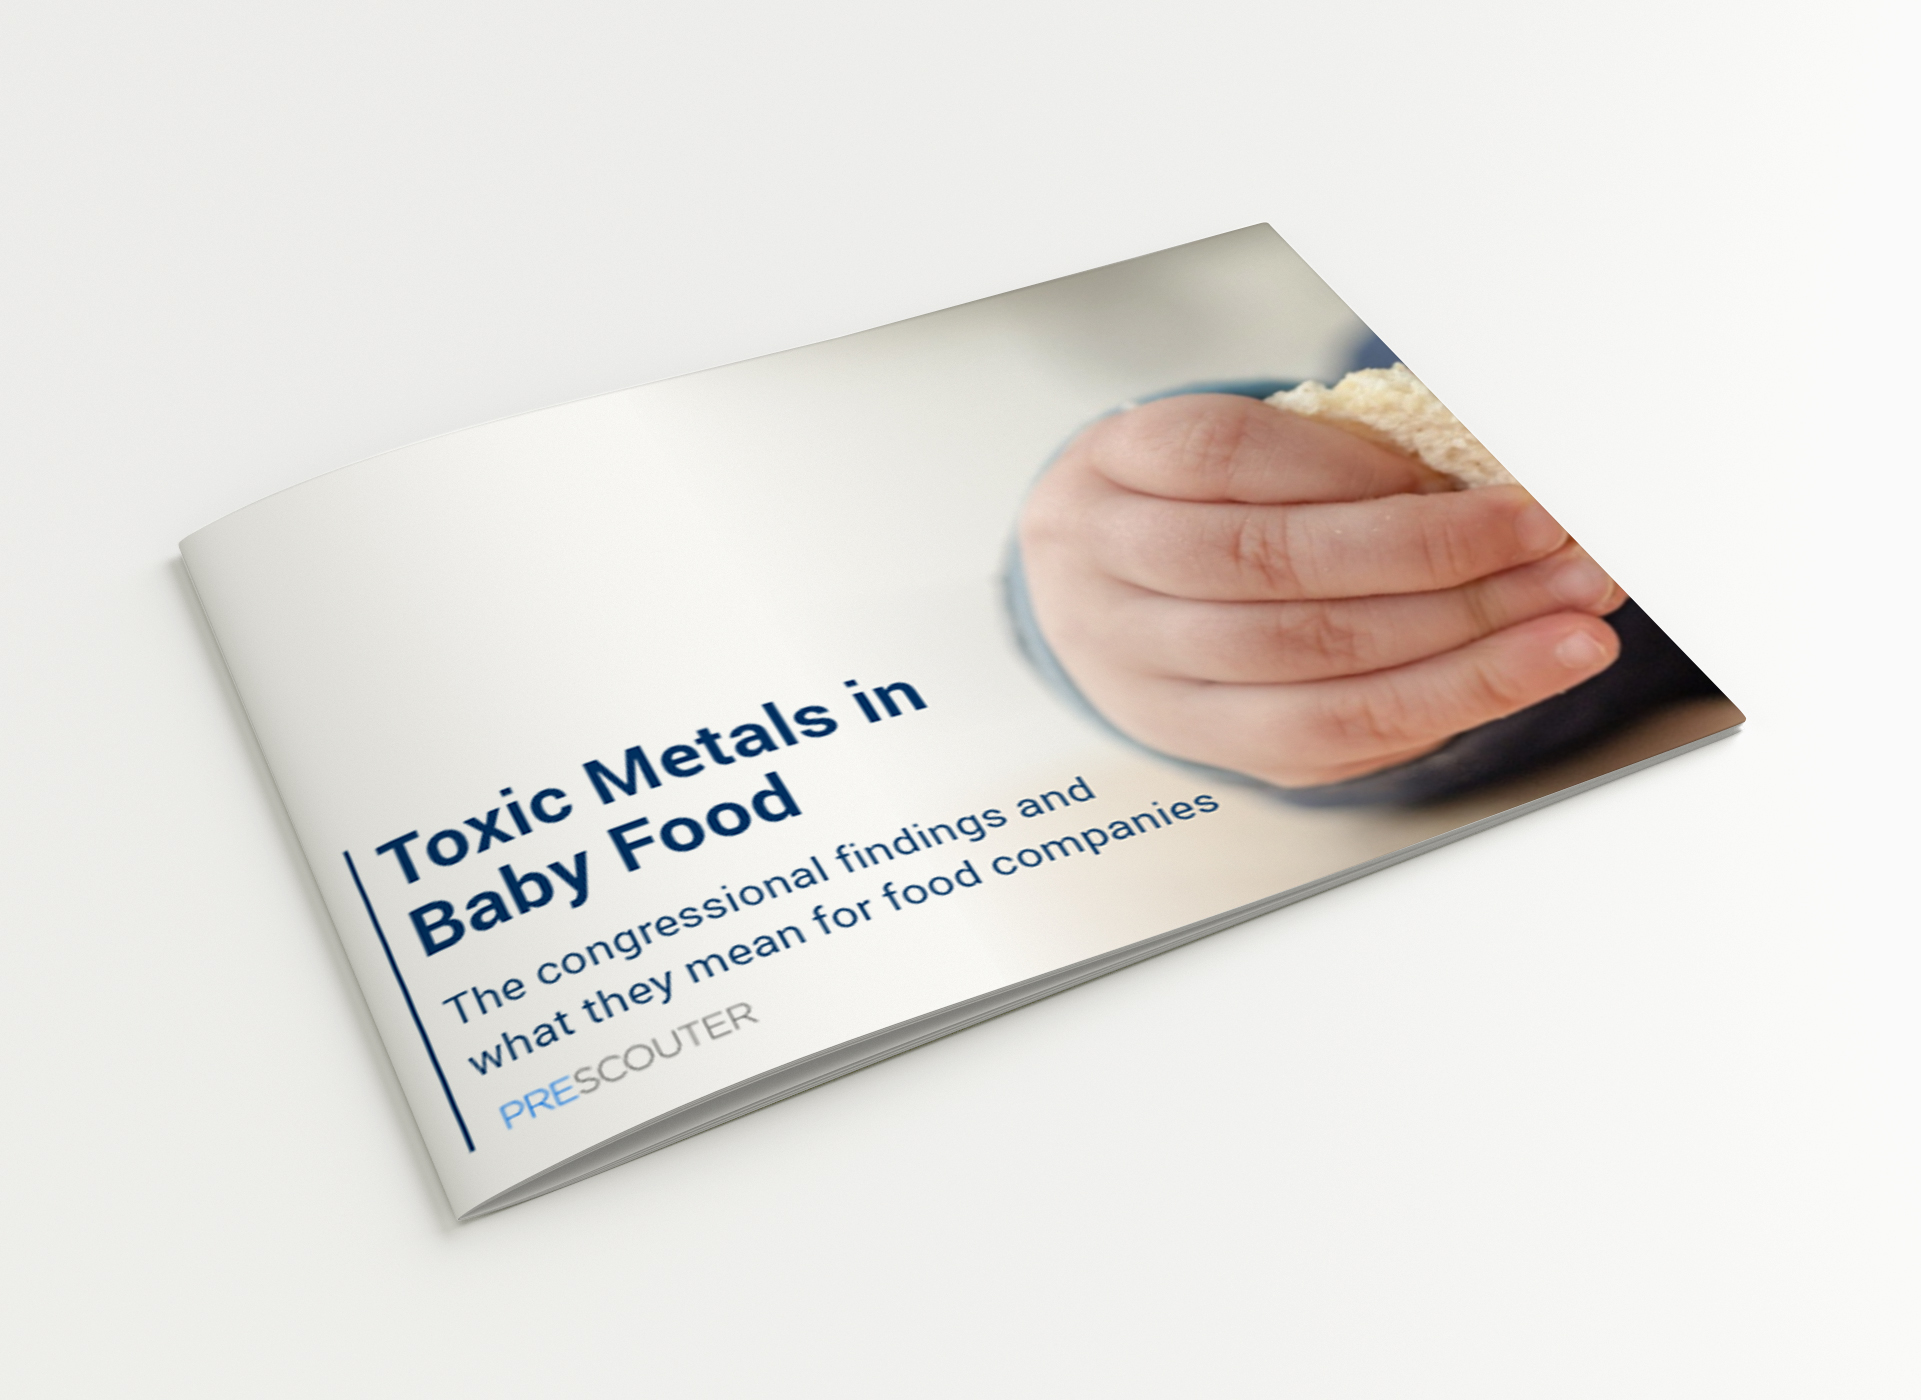 Toxic Metals in Baby Food: The Congressional Findings and What They Mean for Food Companies